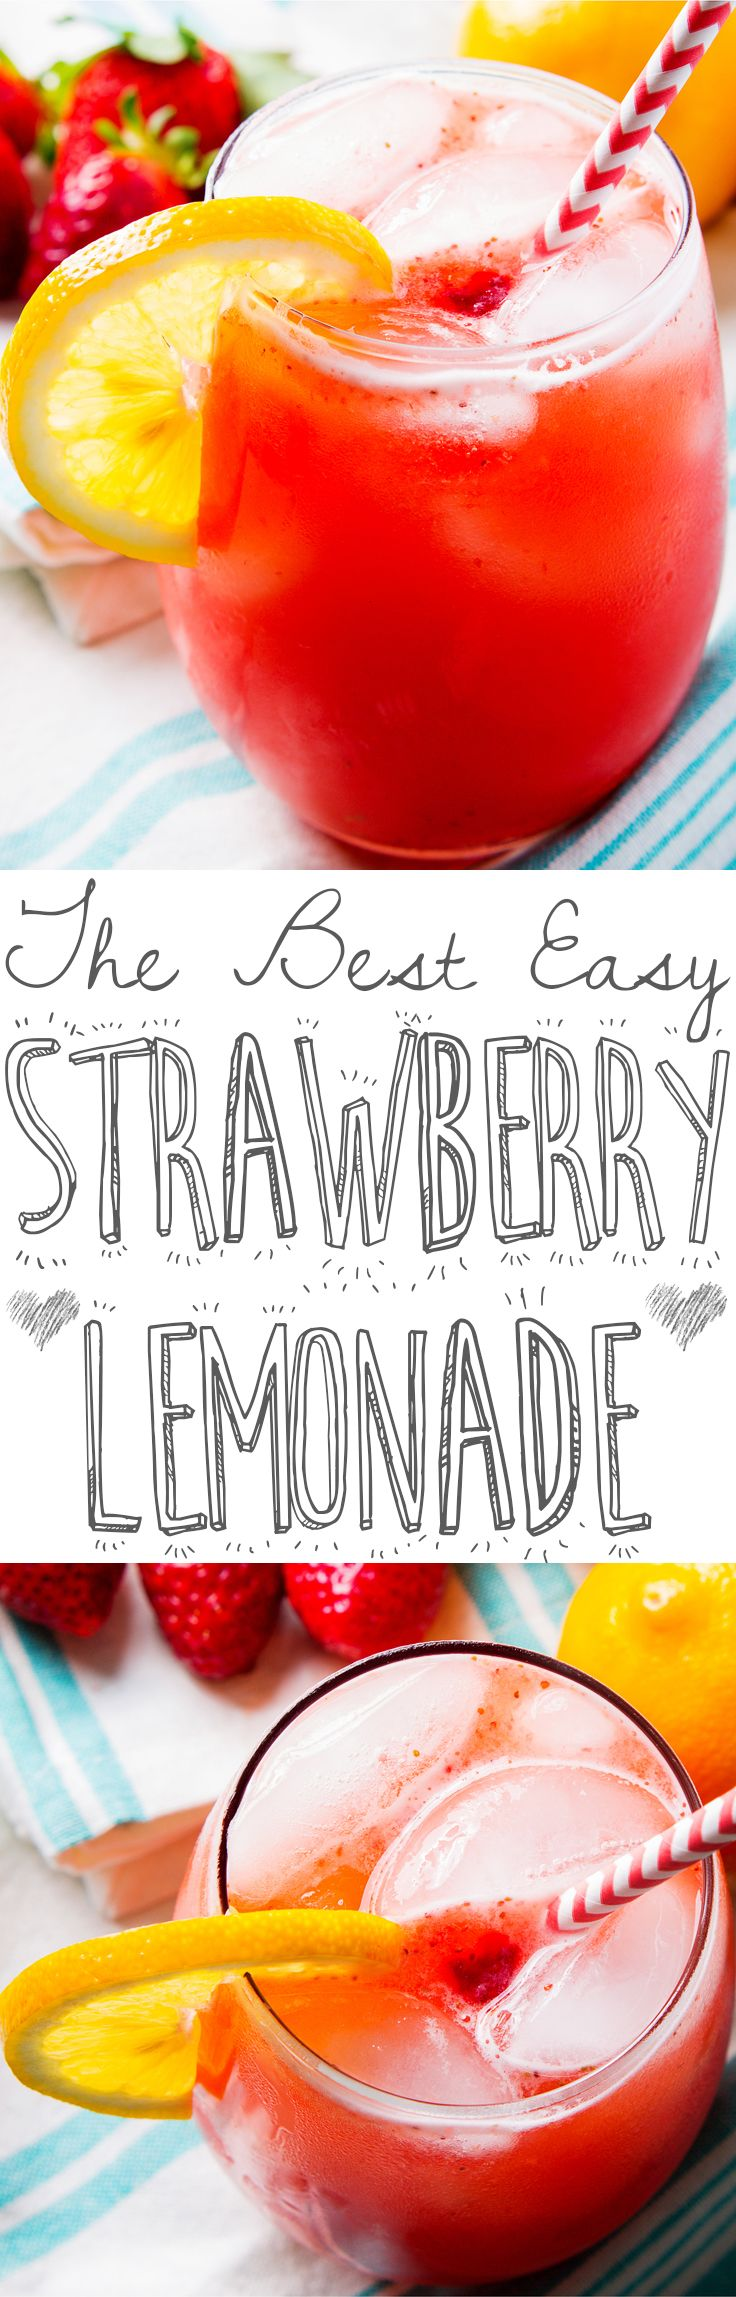 What do you do when life hands you lemons? That's easy – add fresh strawberries and make homemade strawberry lemonade! I make this with fresh strawberries and meyer lemons and it's a quick, easy recipe that's very welcome on a hot day. All you need are a few minutes and a blender – it's so easy to make that you could totally whip this up to cool off after mowing the lawn – and if that's not incentive to do yard work, I don't know what is.